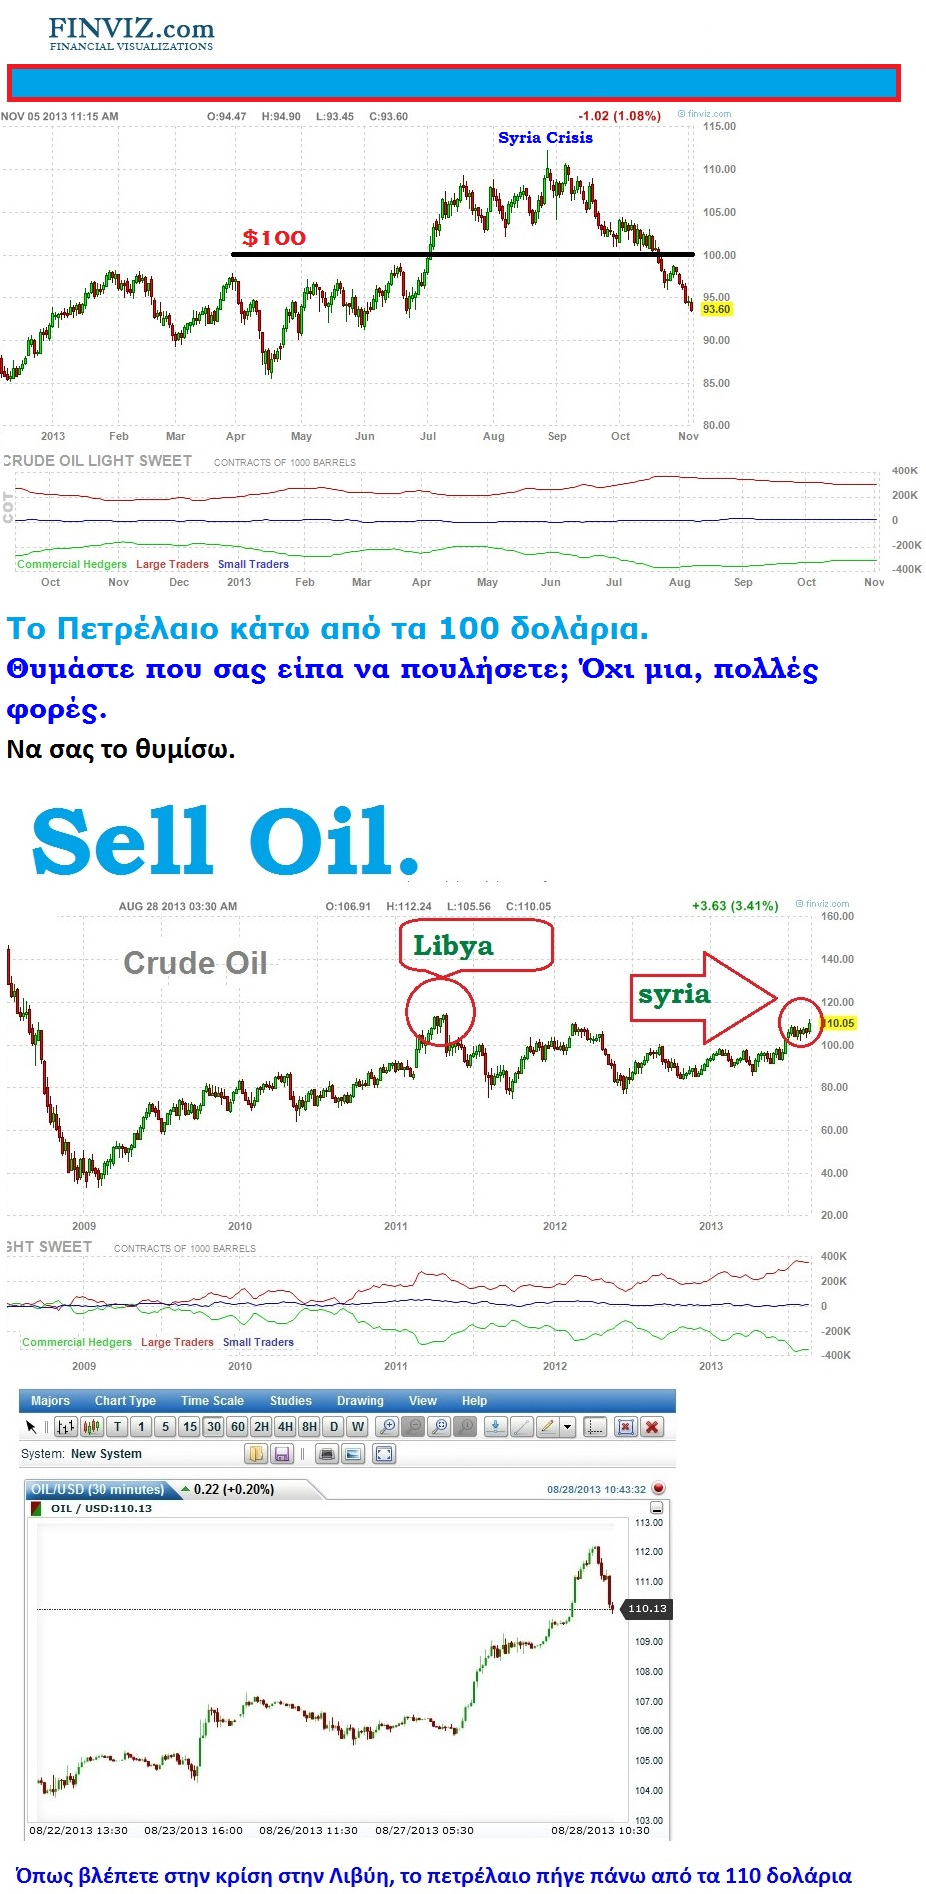 FOREX CRUDE OIL shell CHART 01 051113